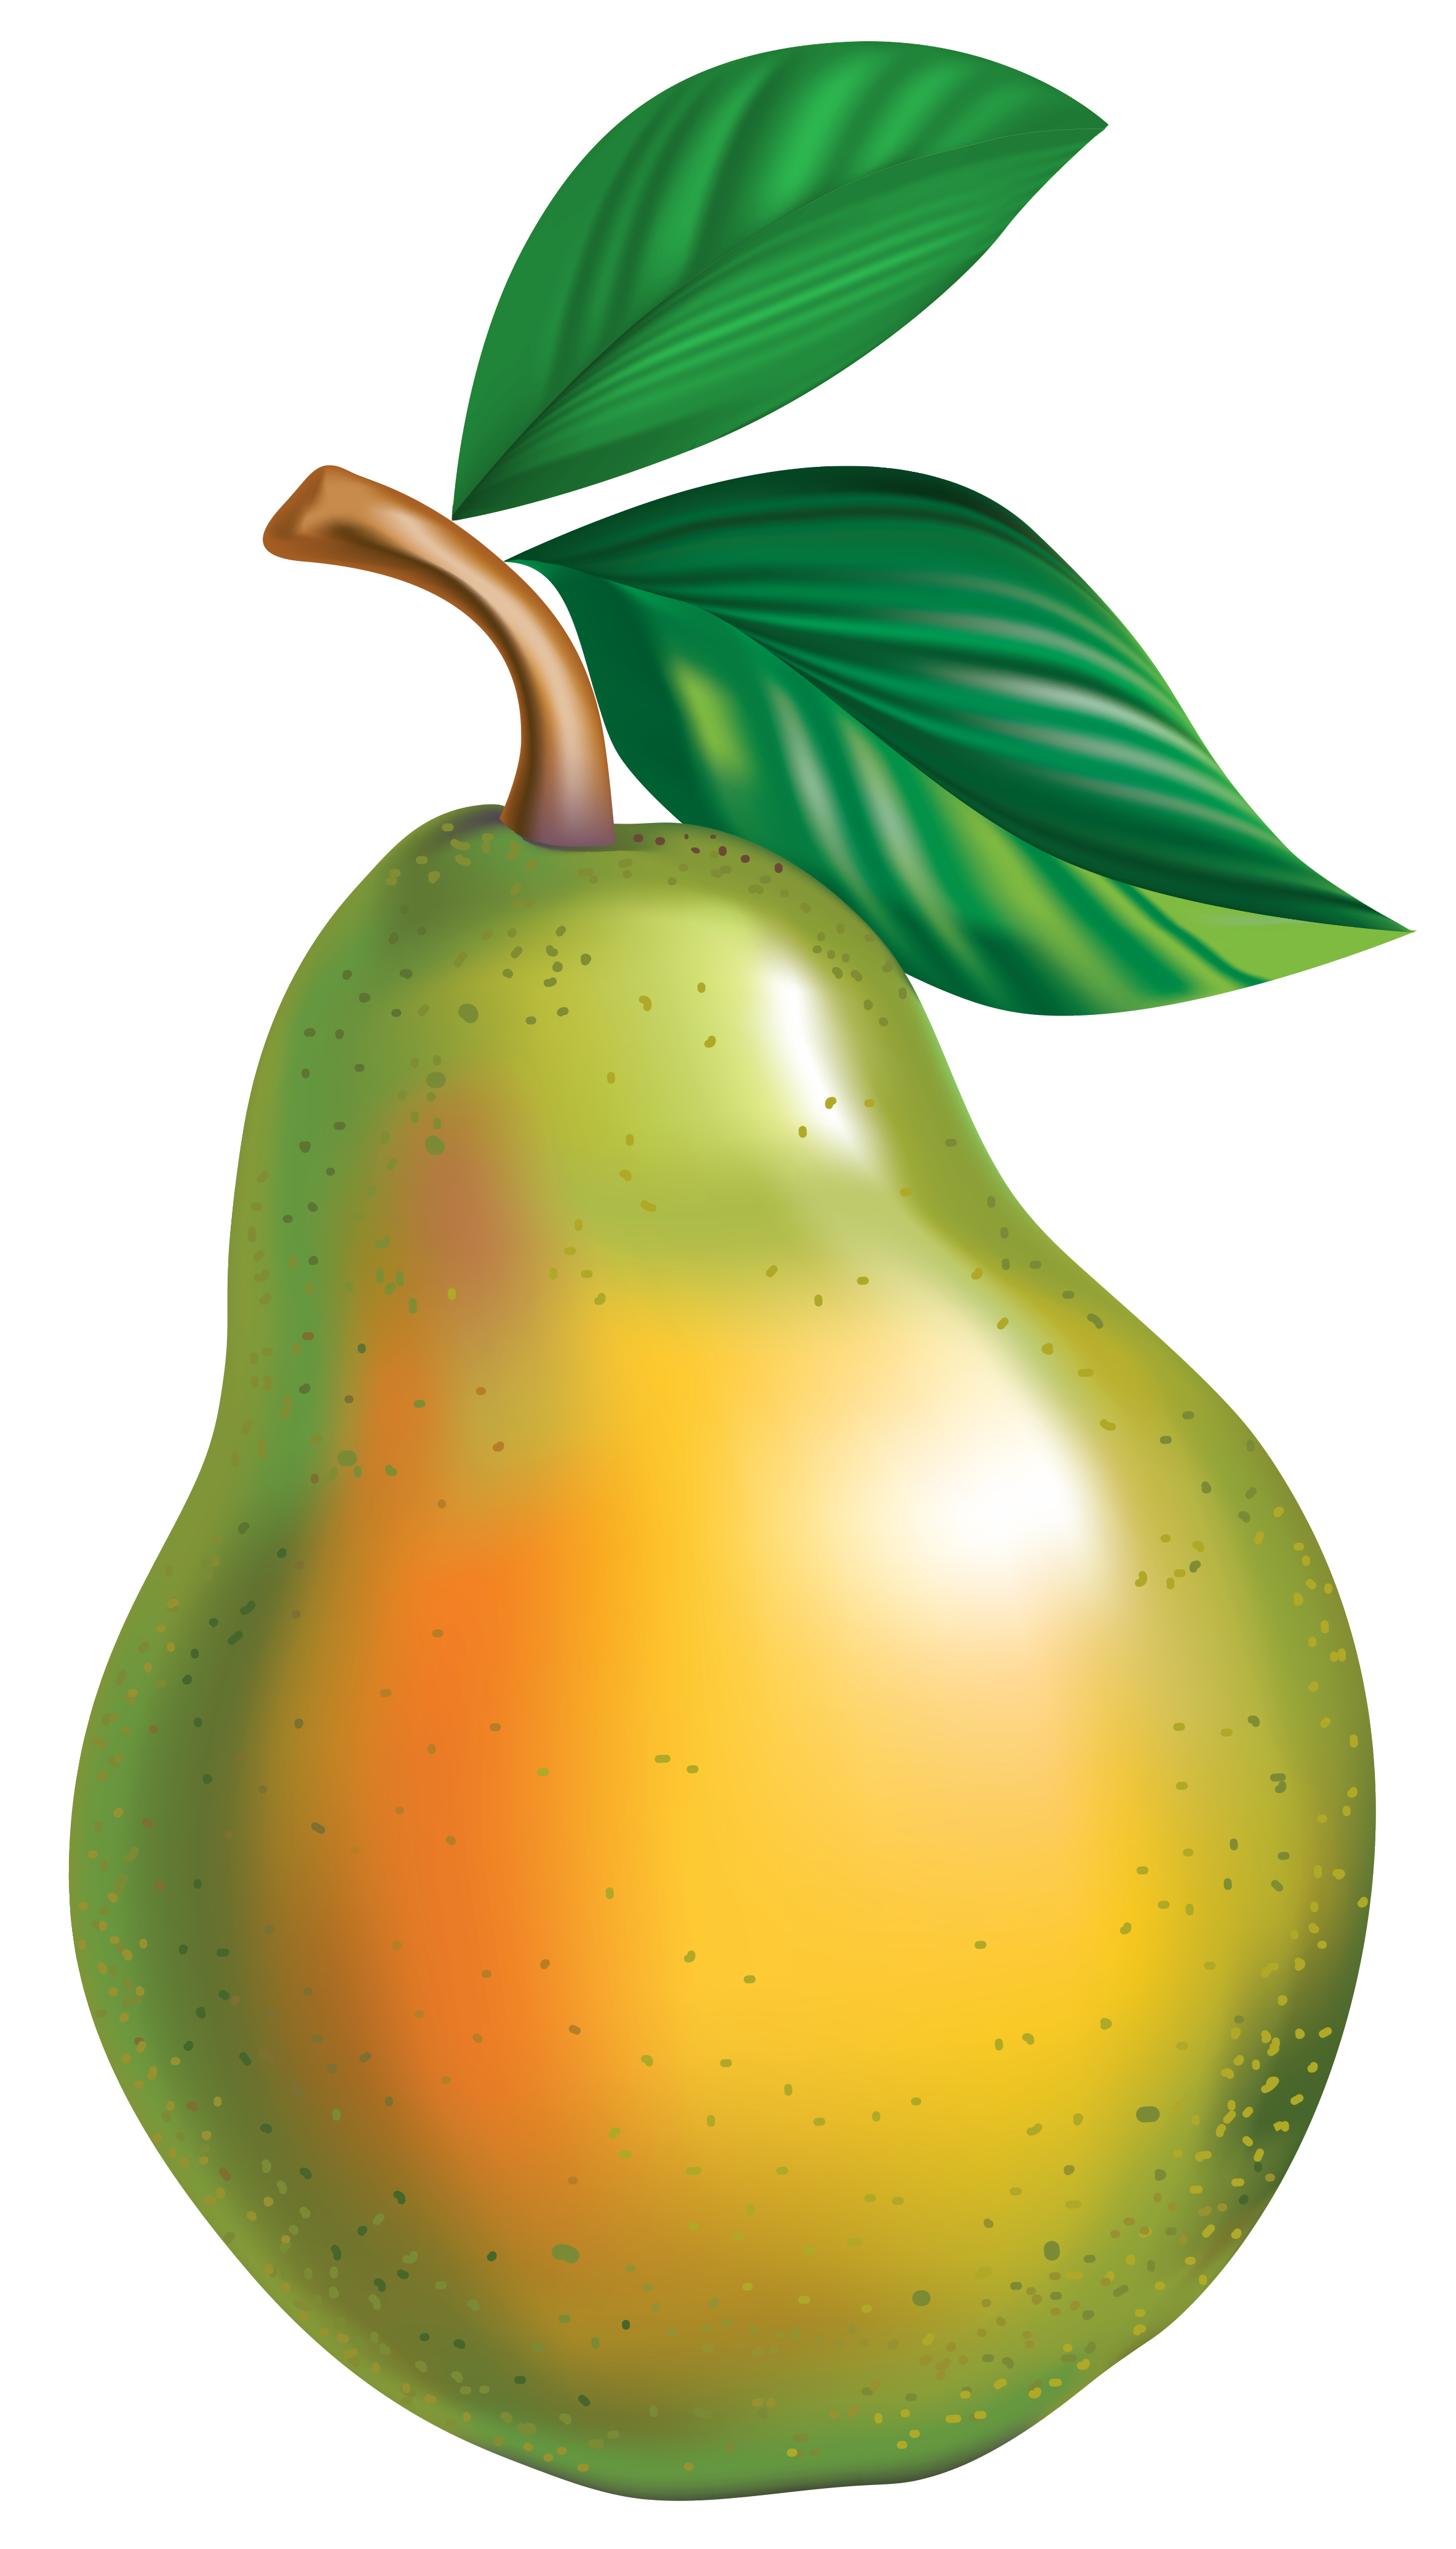 2367x4144 Pear Png Clipart Pictureu200b Gallery Yopriceville